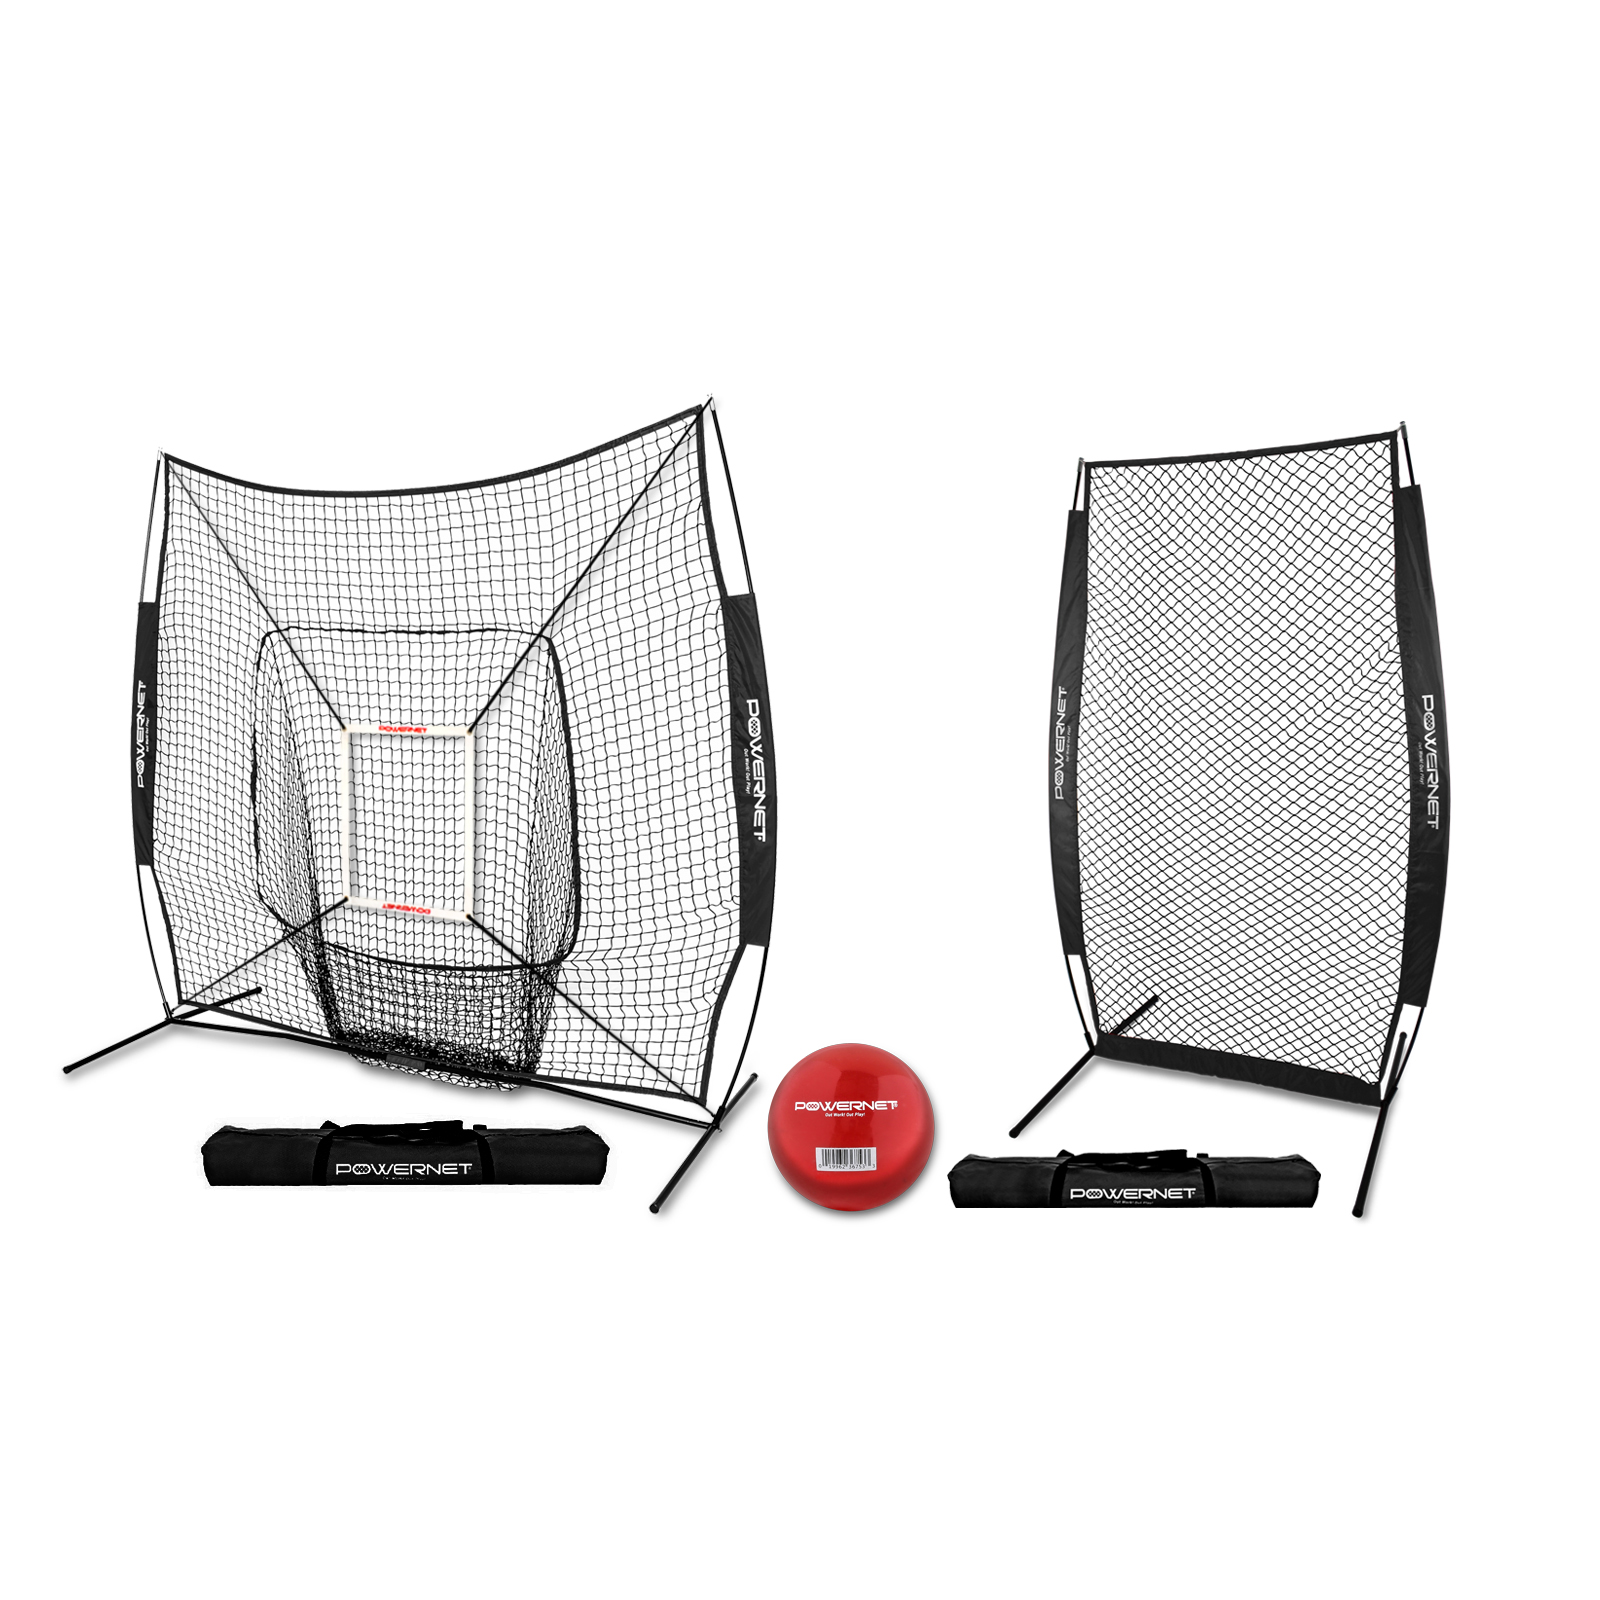 PowerNet 7x7 Baseball Softball Hitting Net Bundle with I-Screen Protection Net